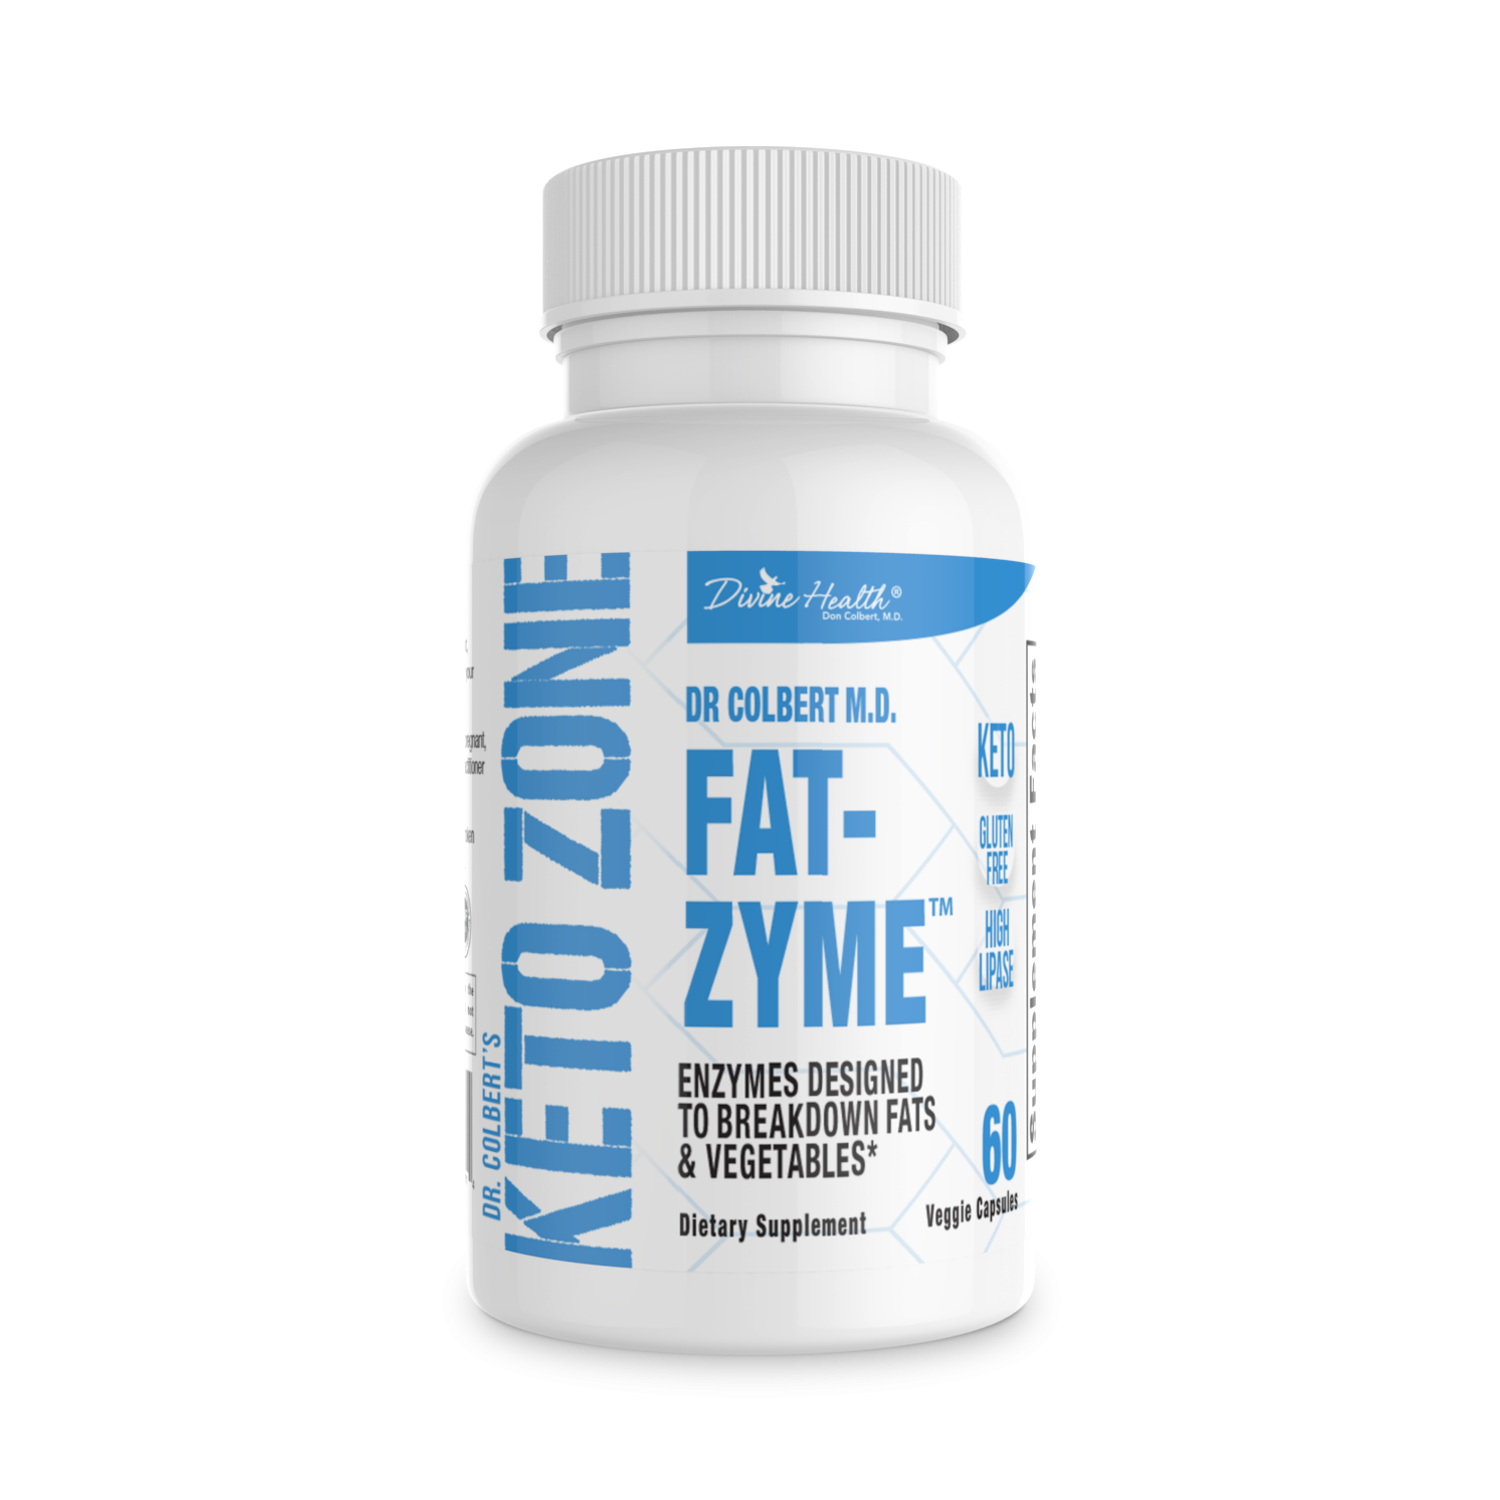 Keto Zone Fat-Zyme® (An Enyzme Designed for the Keto Zone Diet)